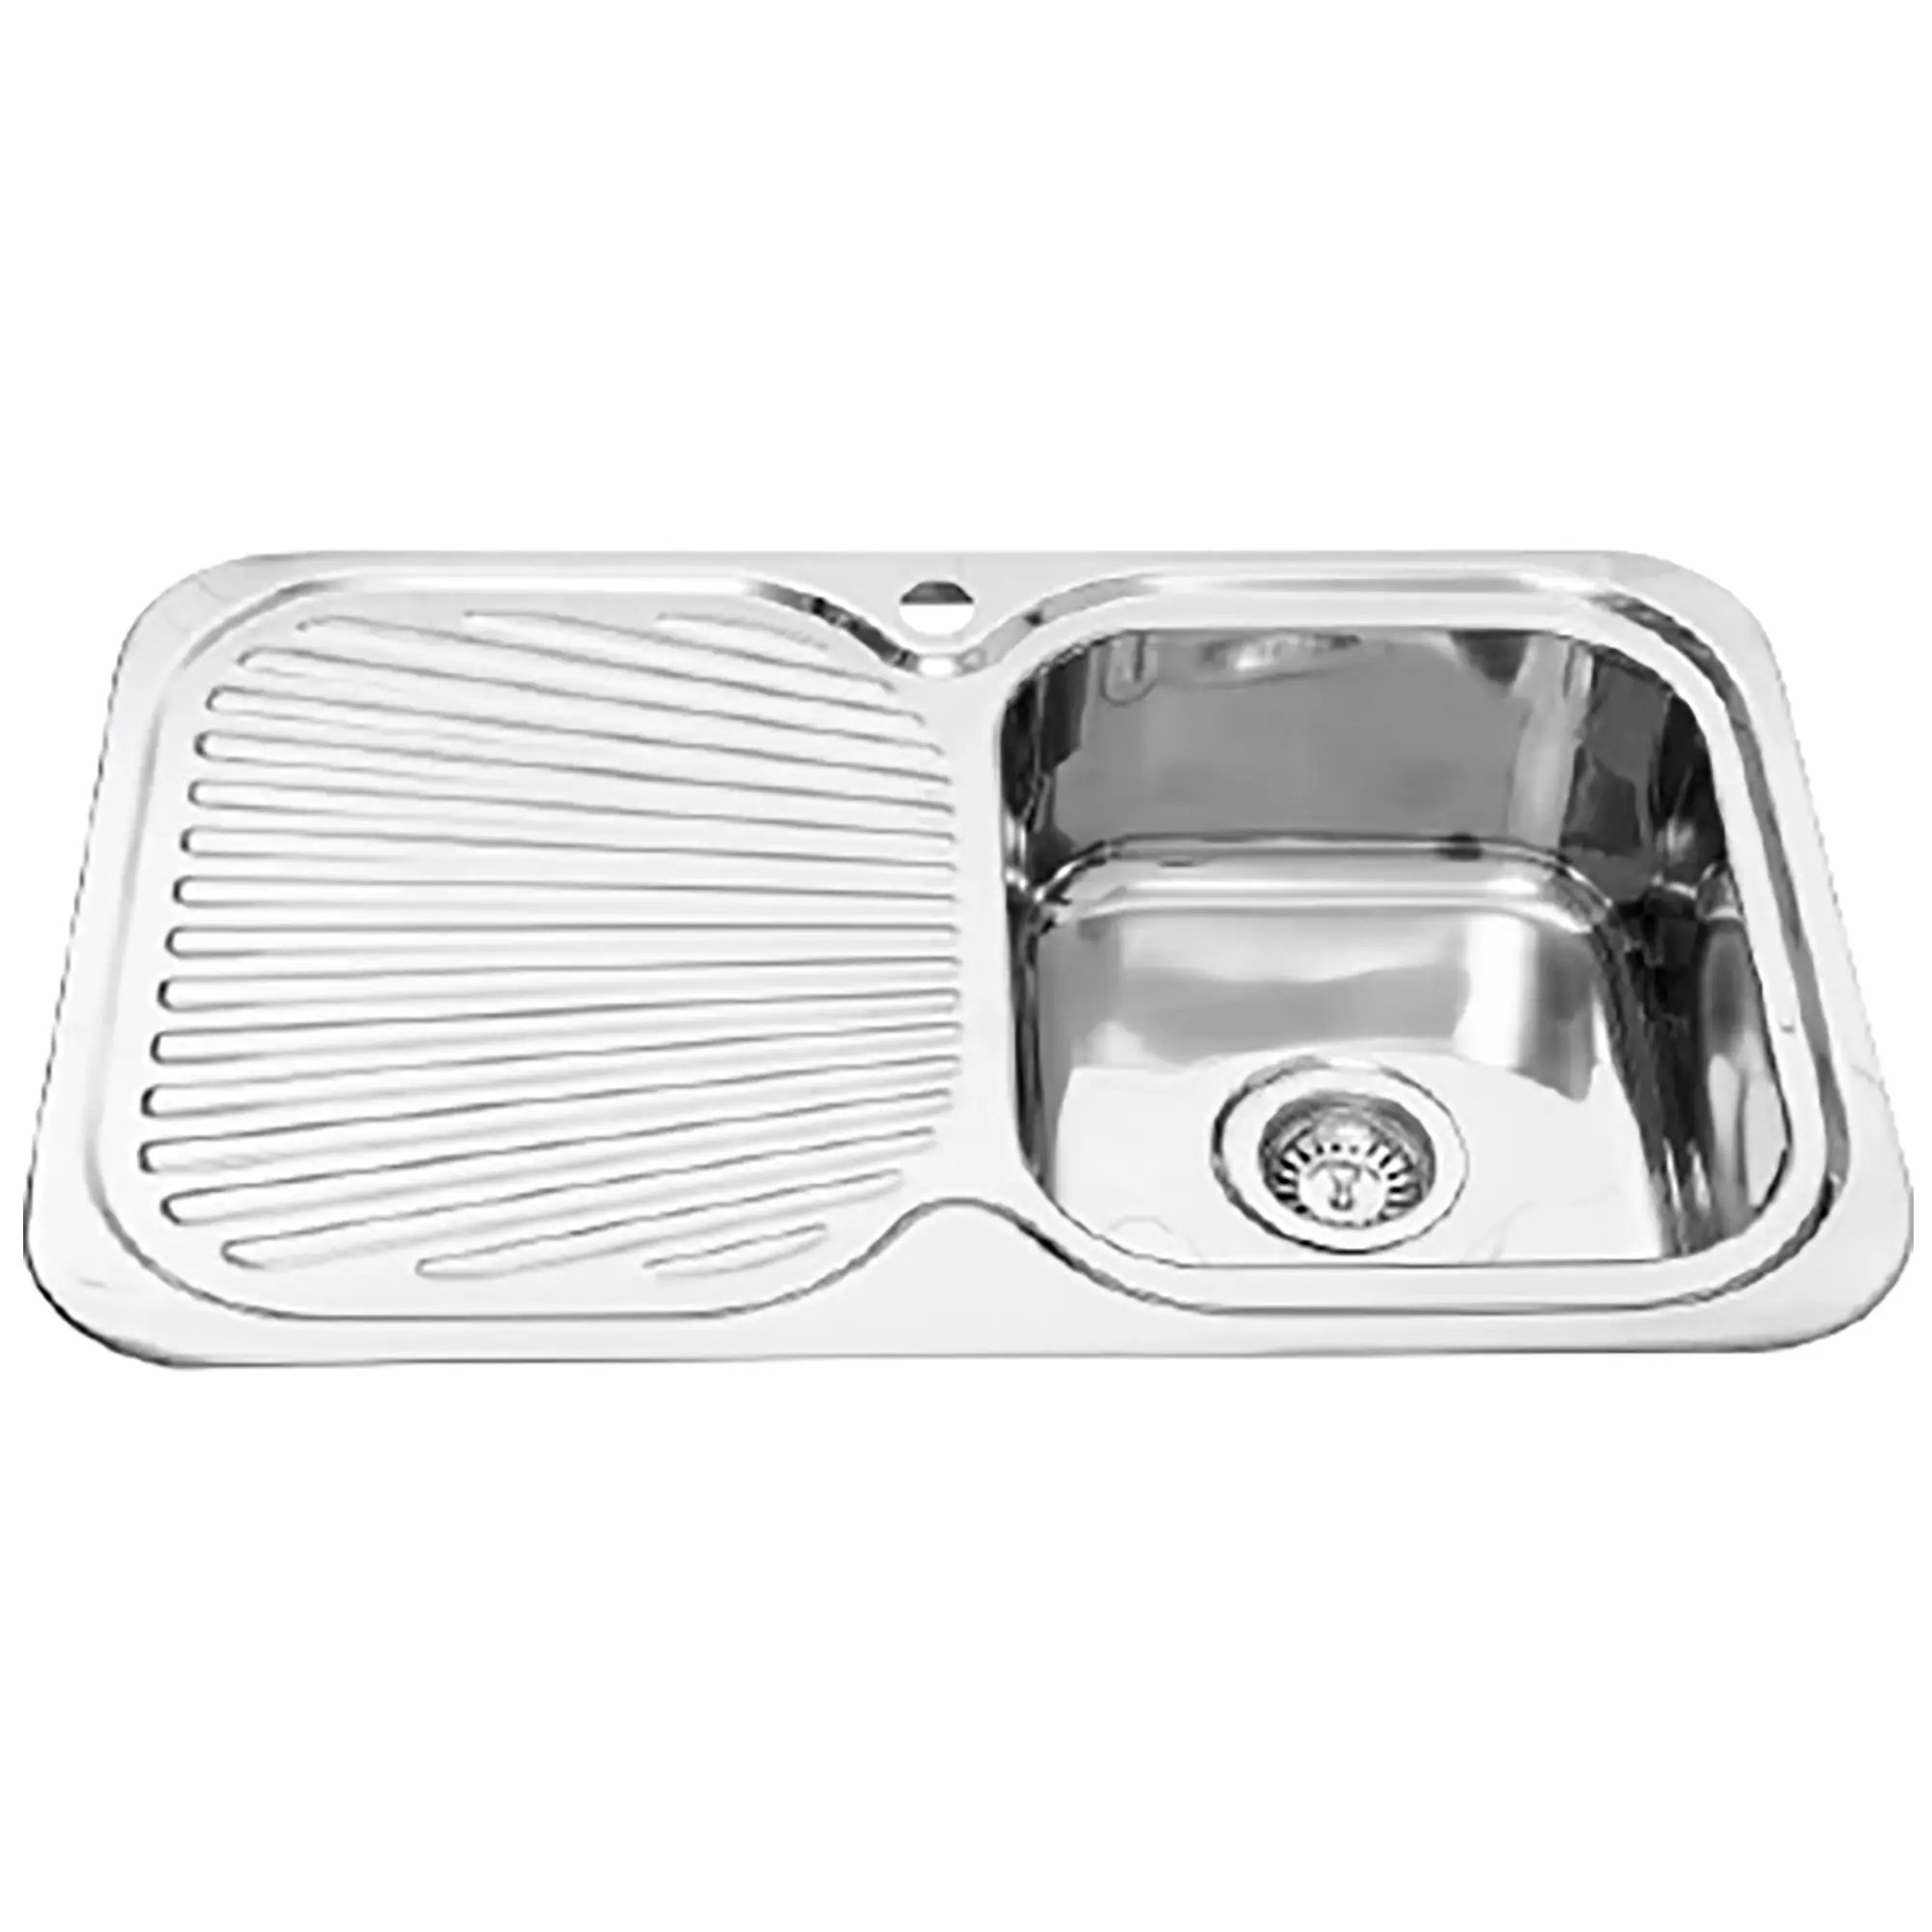 Furnware Dorset Veronar Matrix Right Hand Single Bowl Single Drain Sink S100 Rh Ss